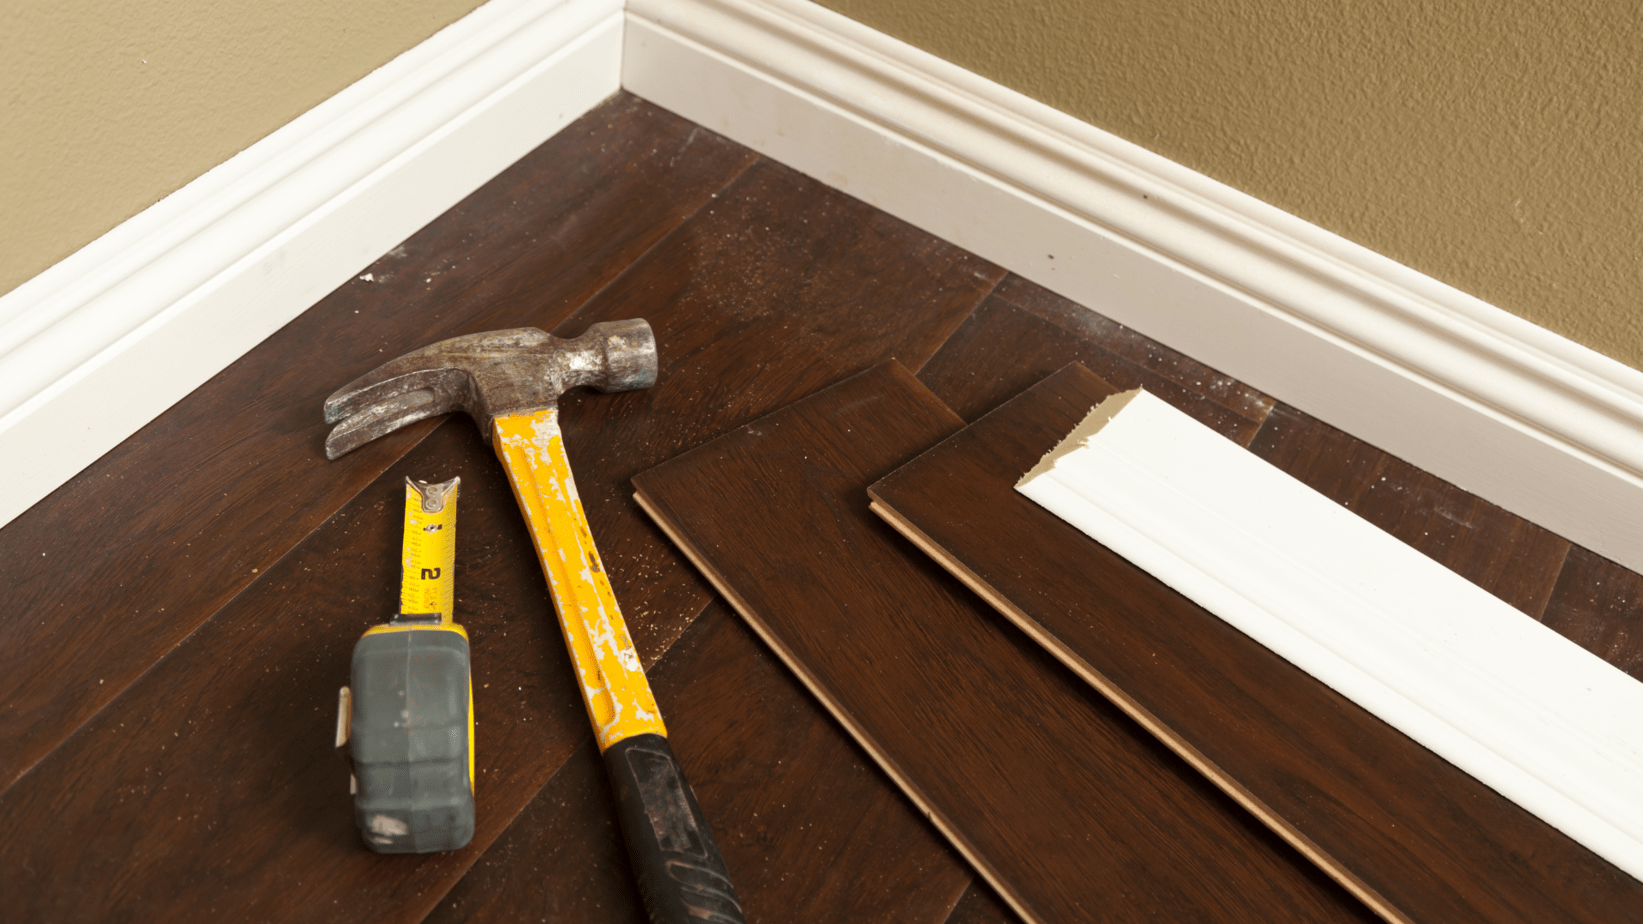 LL Flooring Review [2021]: Should You Buy From There?